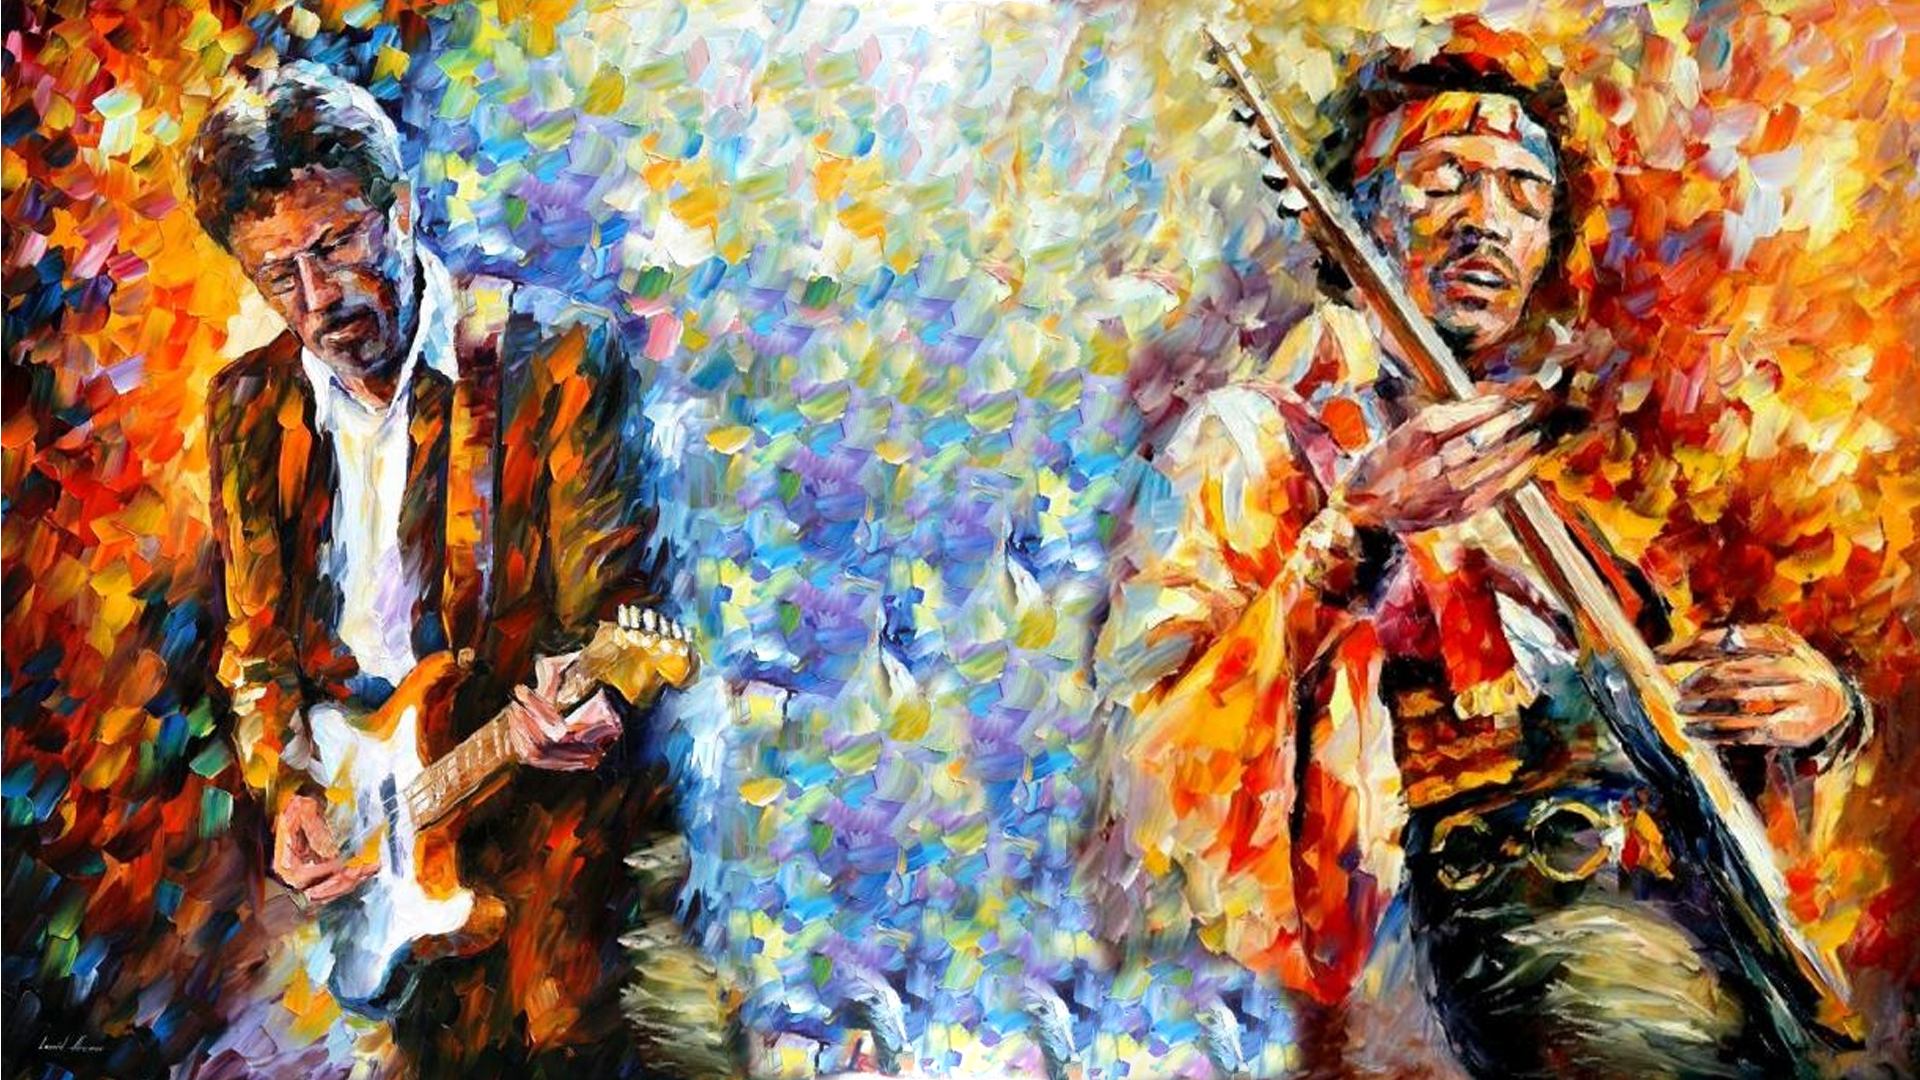 Jimi Hendrix Wallpapers High Resolution And Quality Download